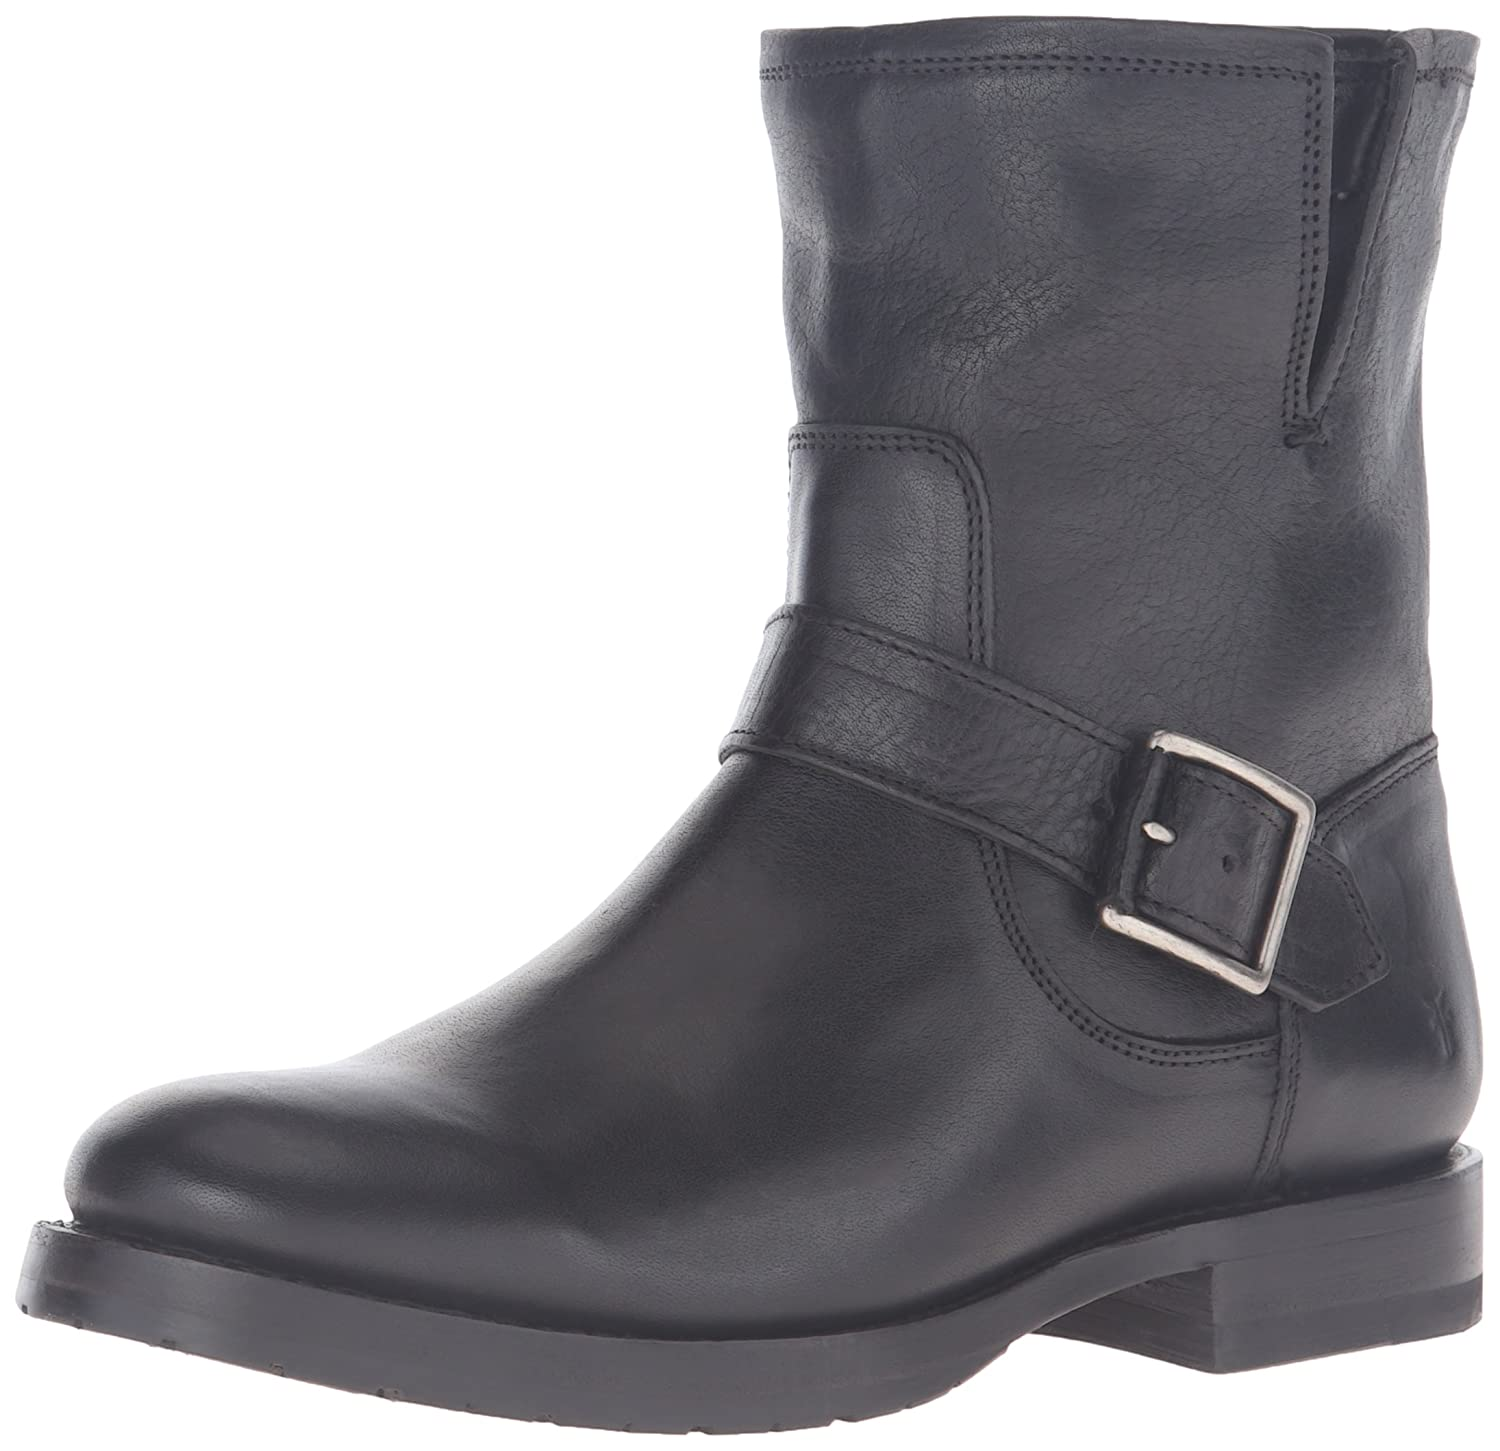 FRYE Women's Natalie Short Engineer Boot B01HON9UQ0 6.5 B(M) US|Black/Soft Tumbled Nubuck